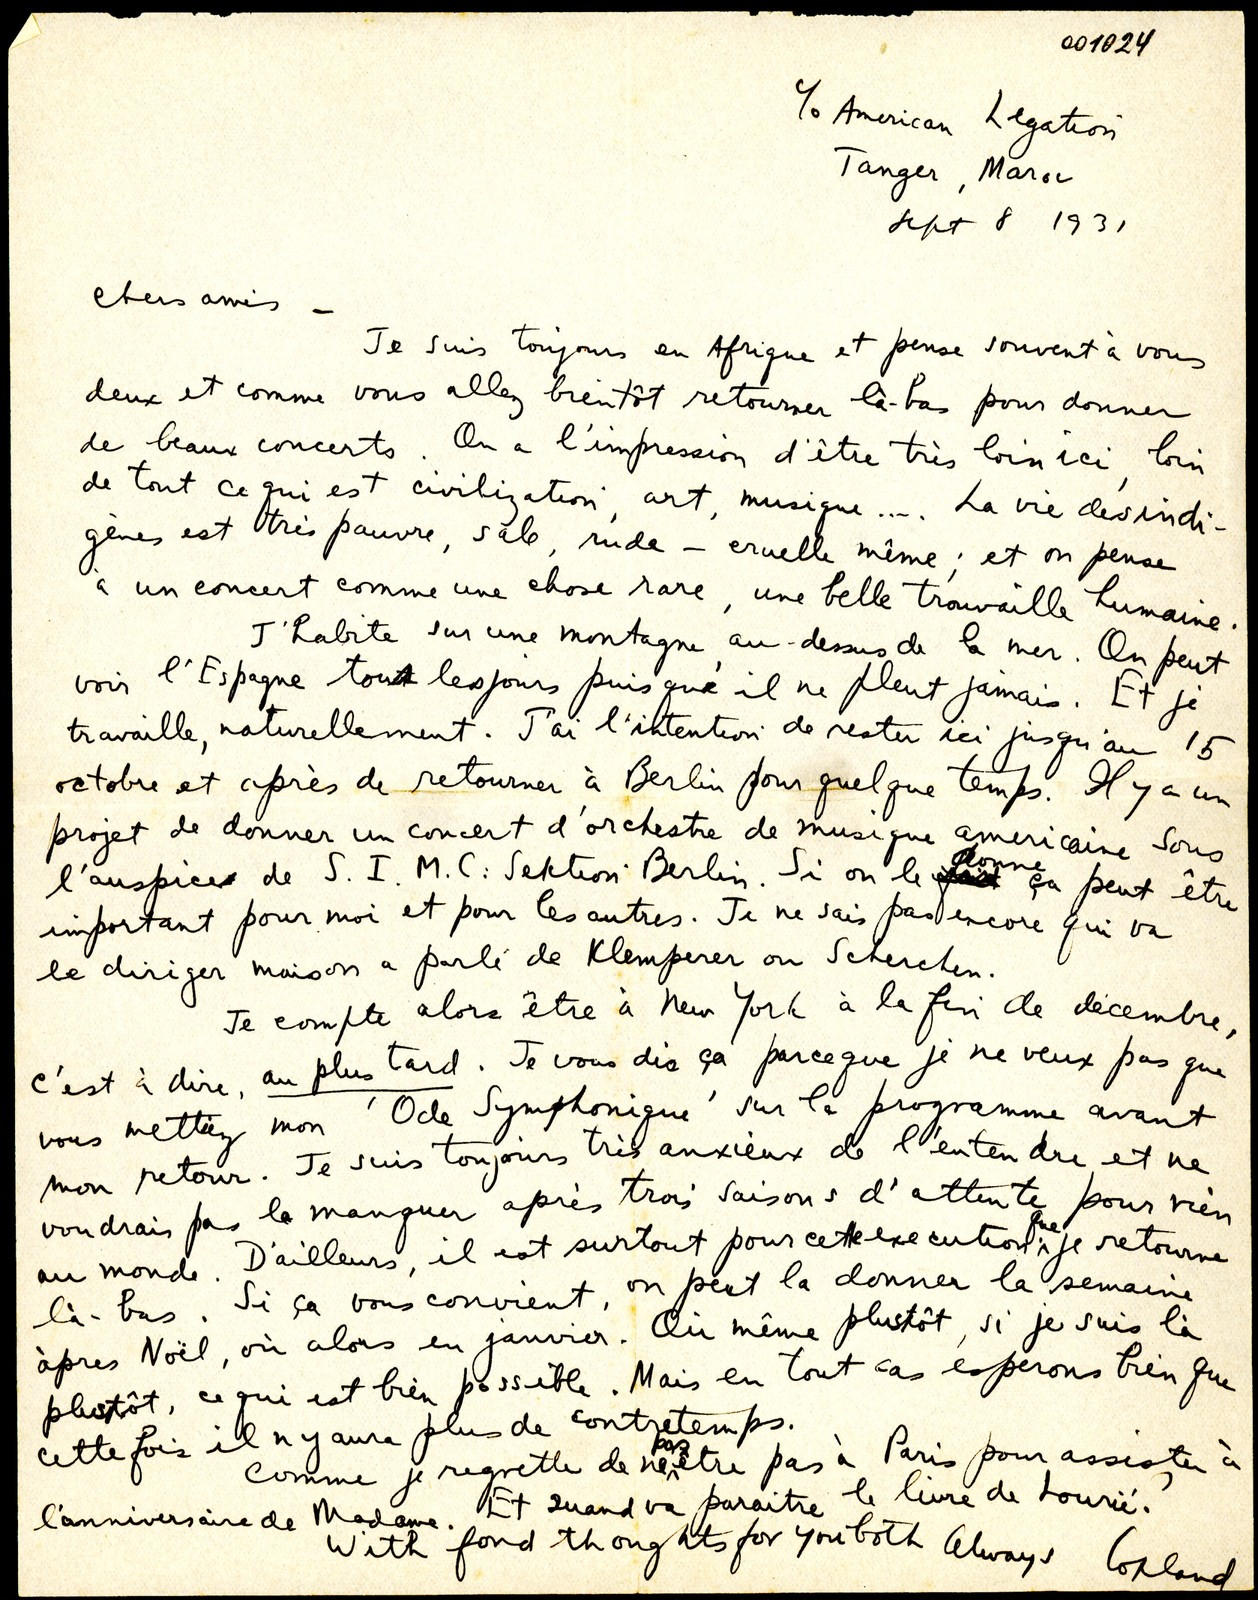 Letter from Aaron Copland to Serge and Natalie Koussevitzky, September 8, 1931.